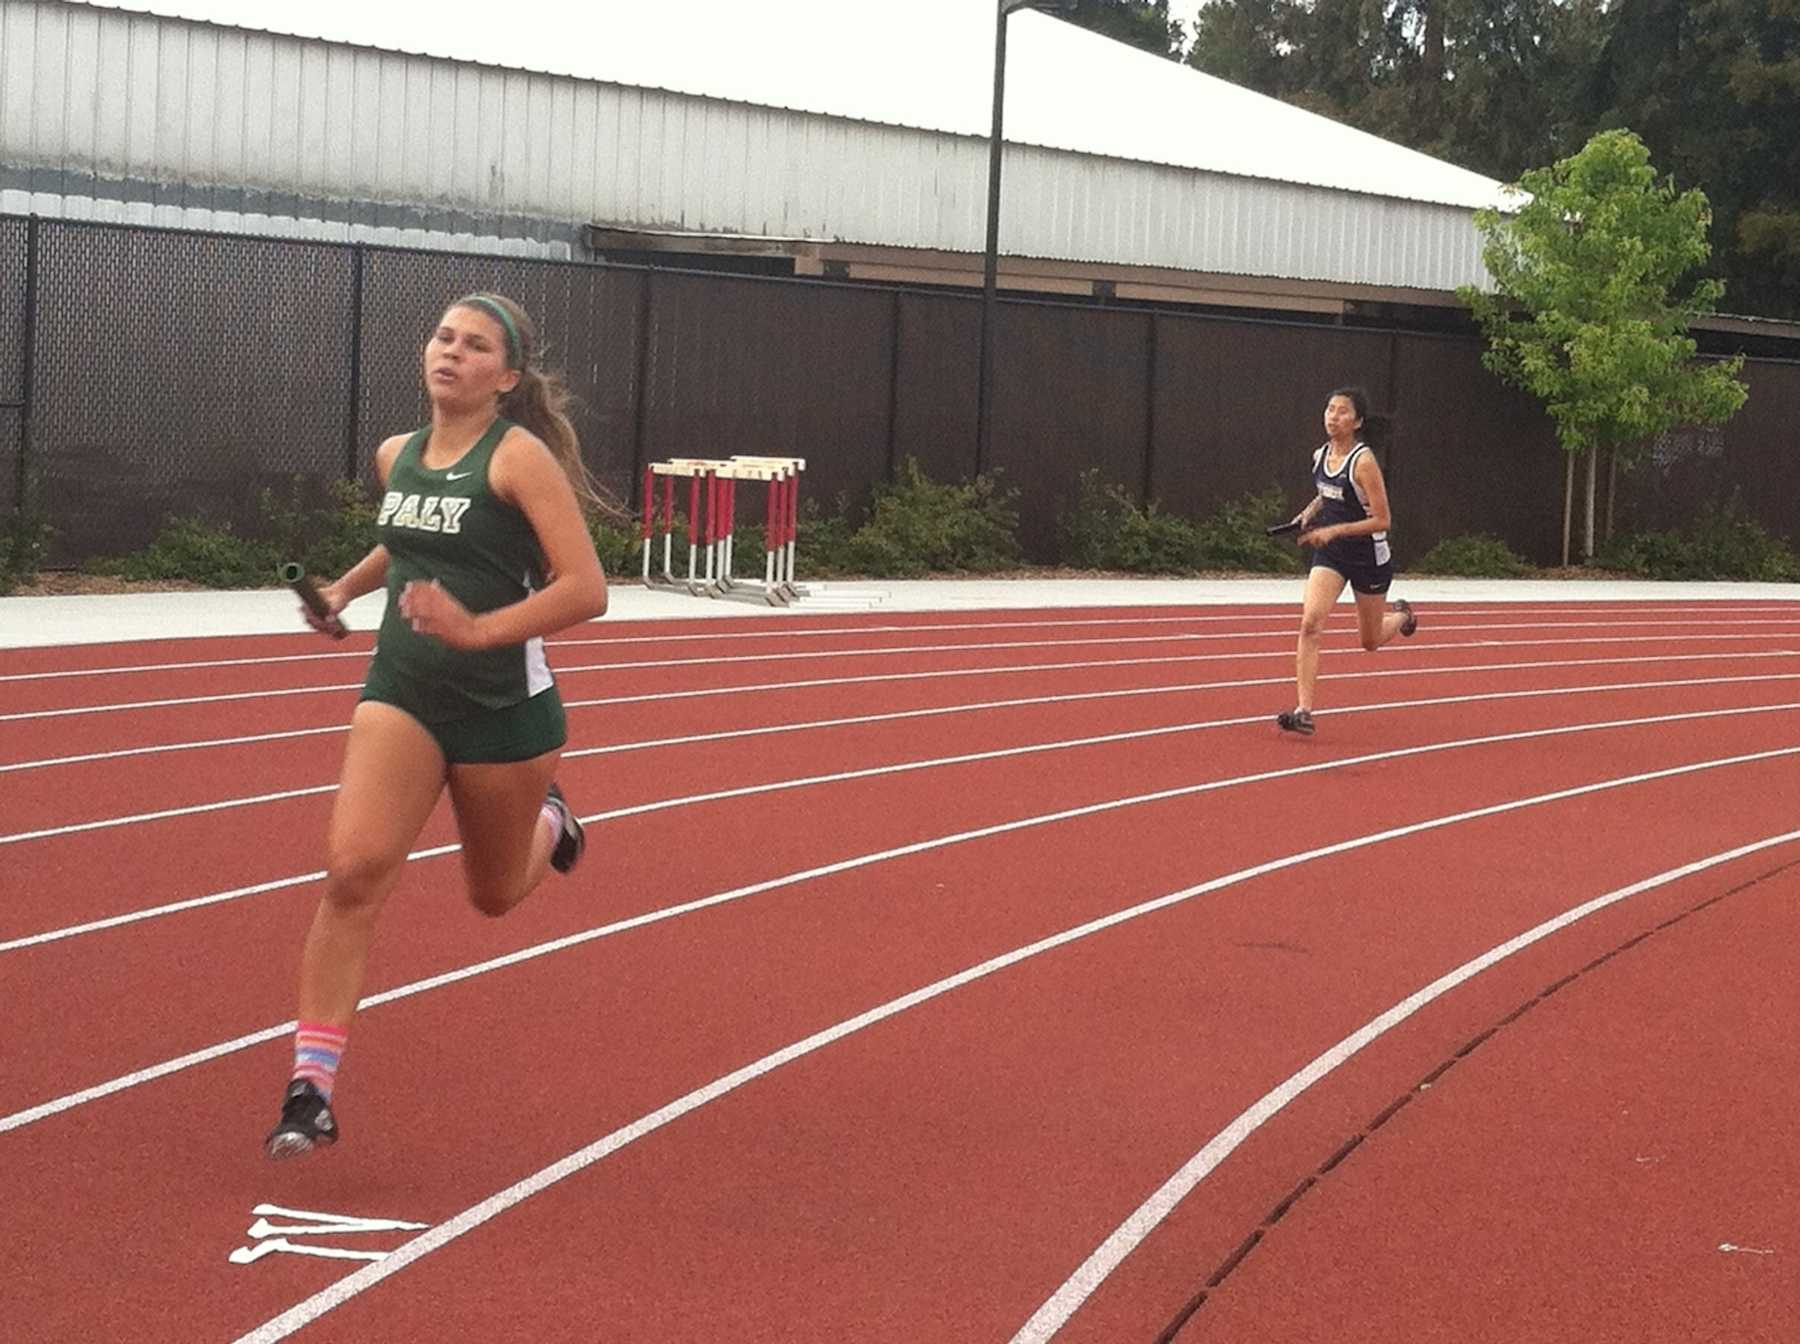 Jacey Pederson ('16) rounds a turn during the 4x400m relay. The Paly girls cruised to victory while taking first in 13 of 15 events.